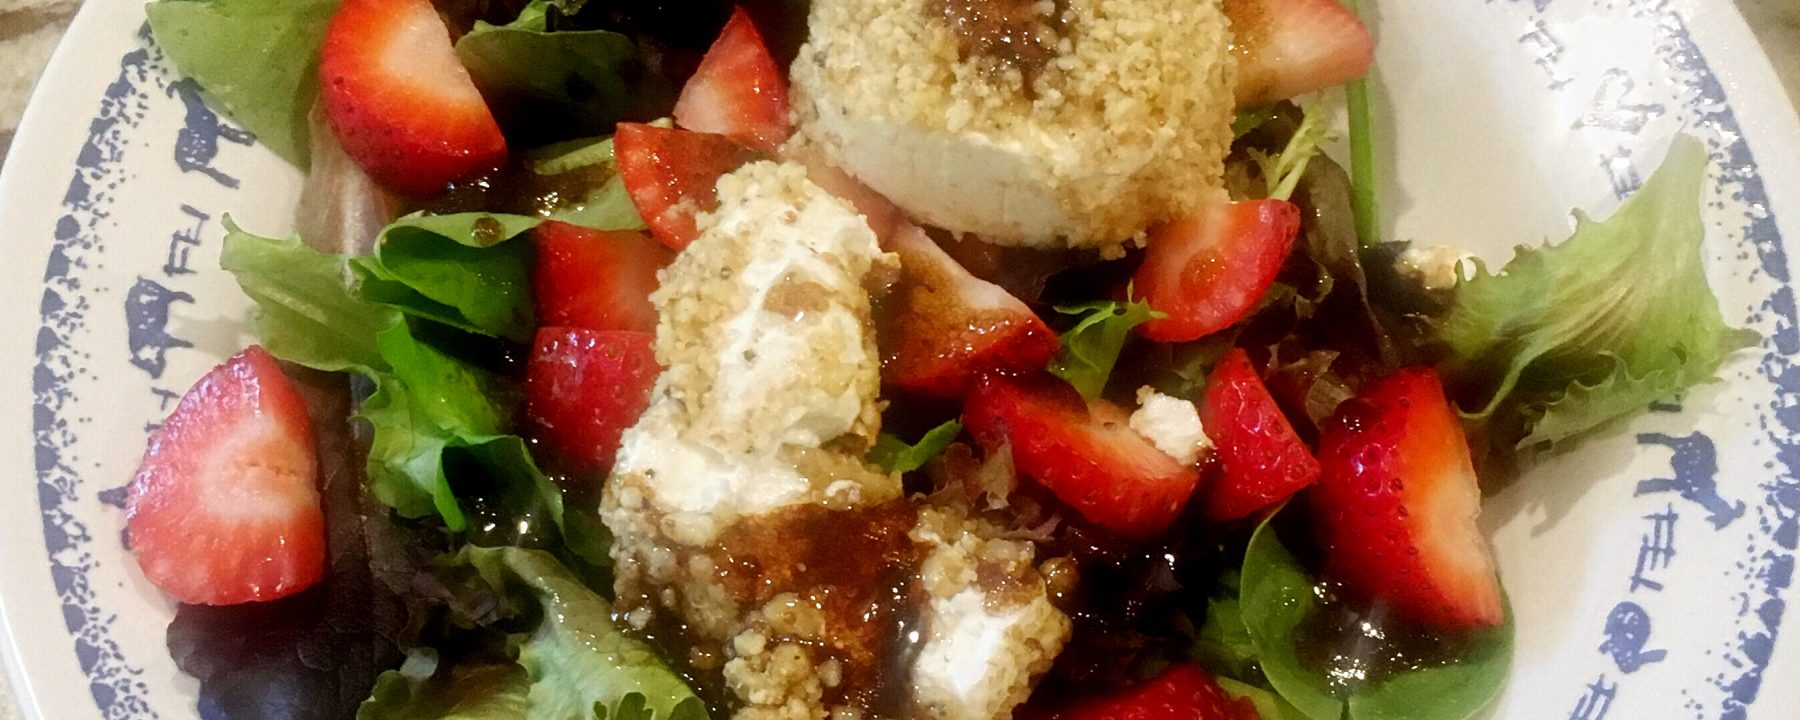 Salad with strawberries and balsamic vinegar